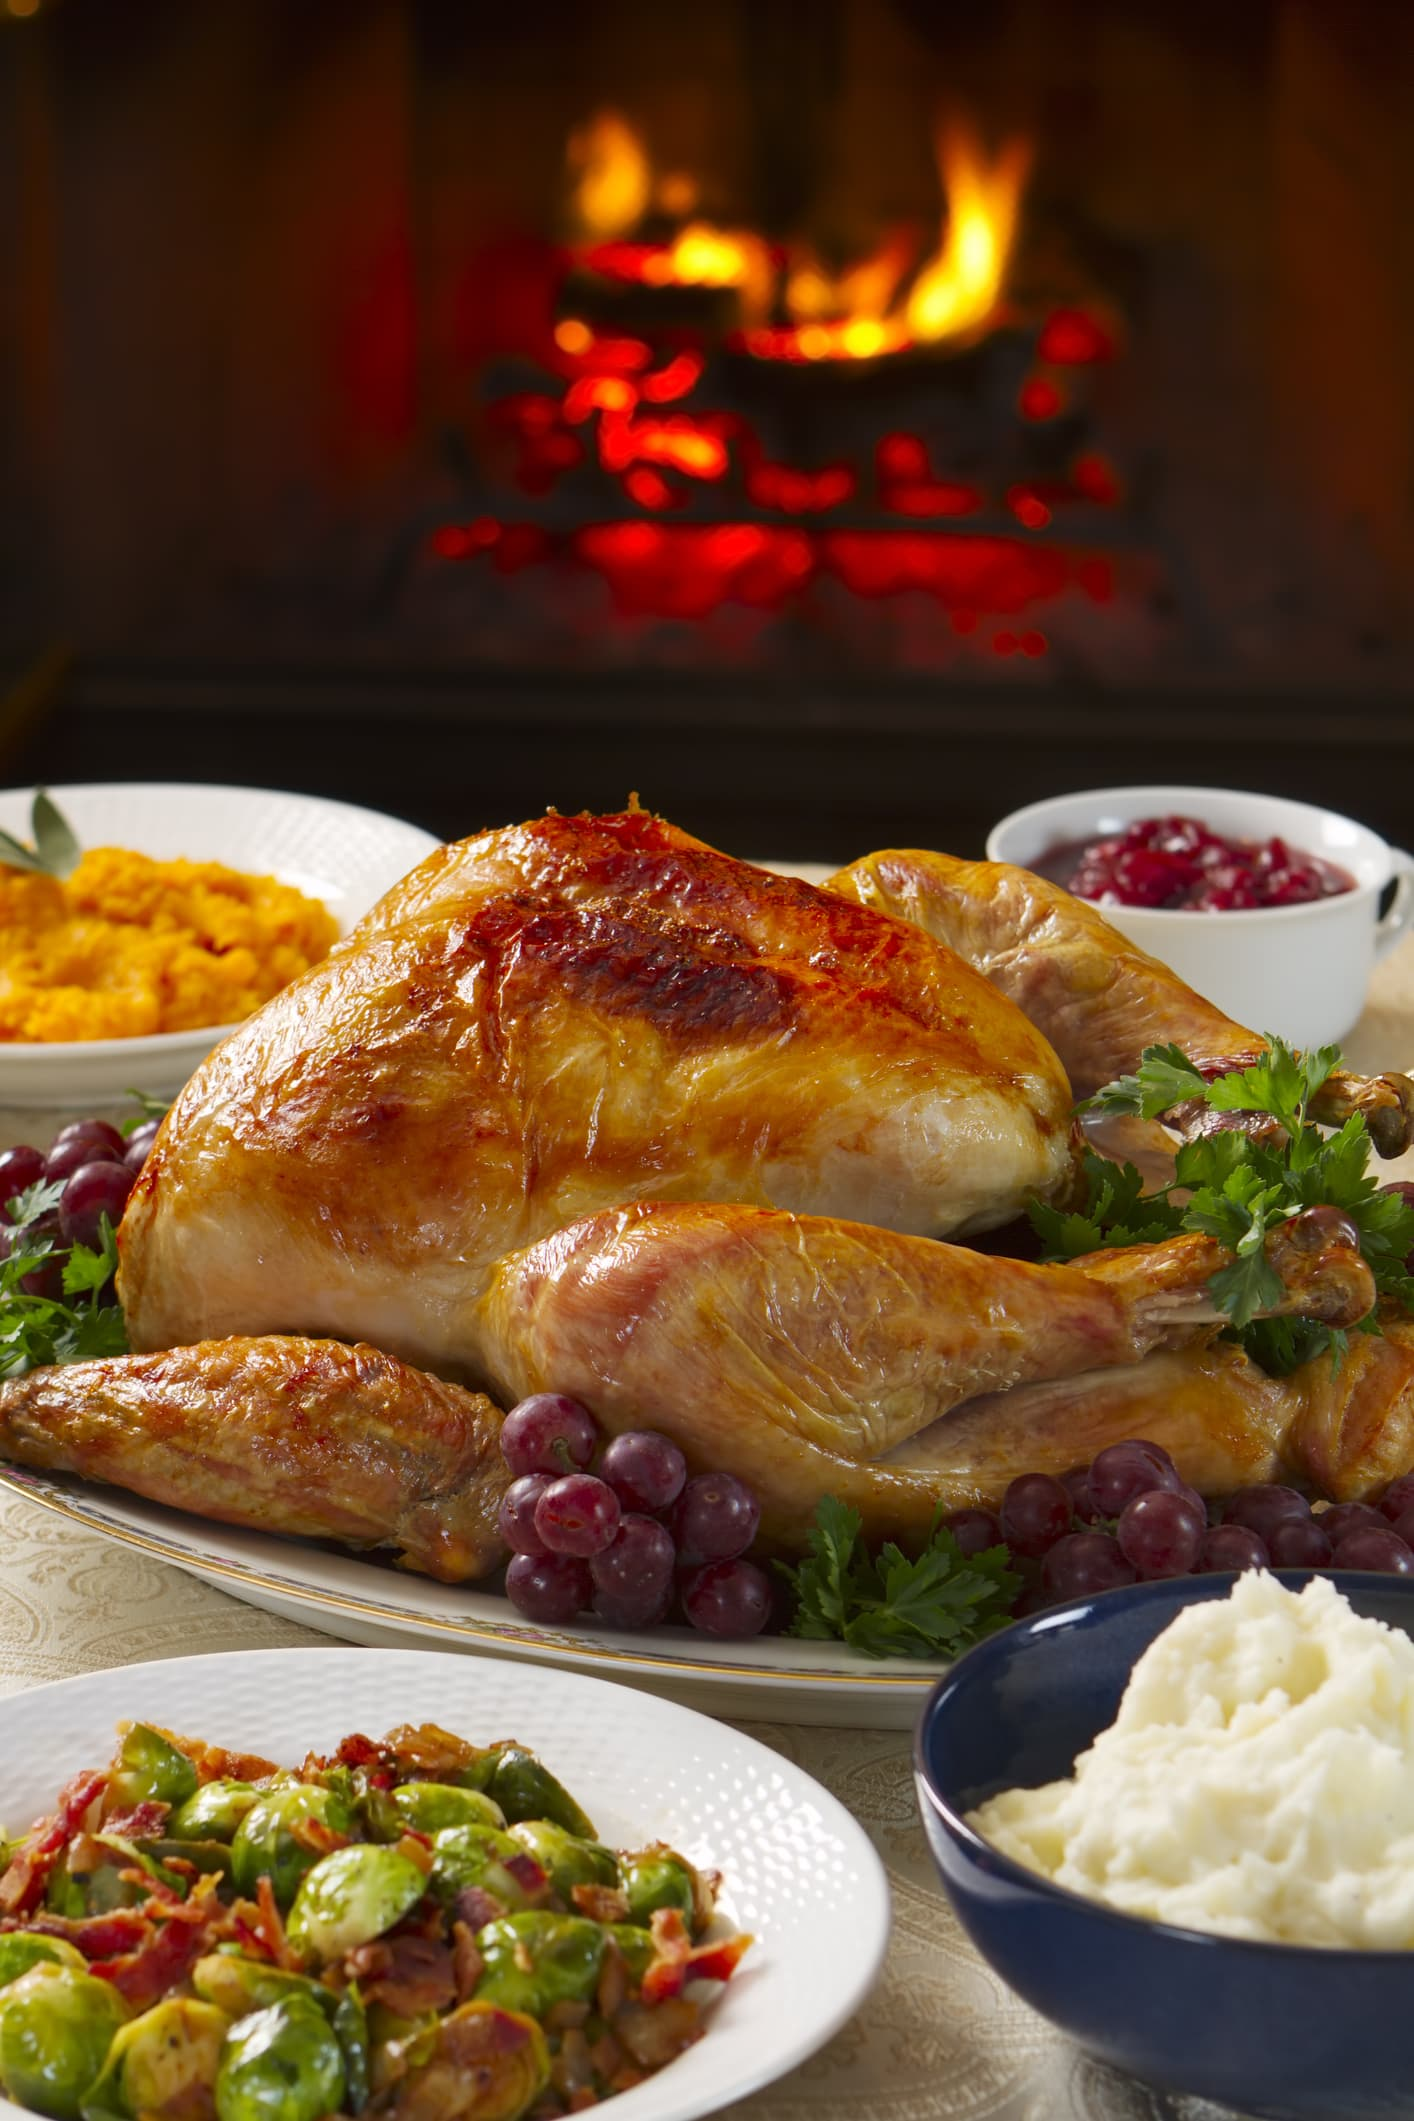 Holiday dinner with roast turkey, butternut squash, Brussels sprout, mashed potatoes, and cranberry sauce, all served by a roaring fire.